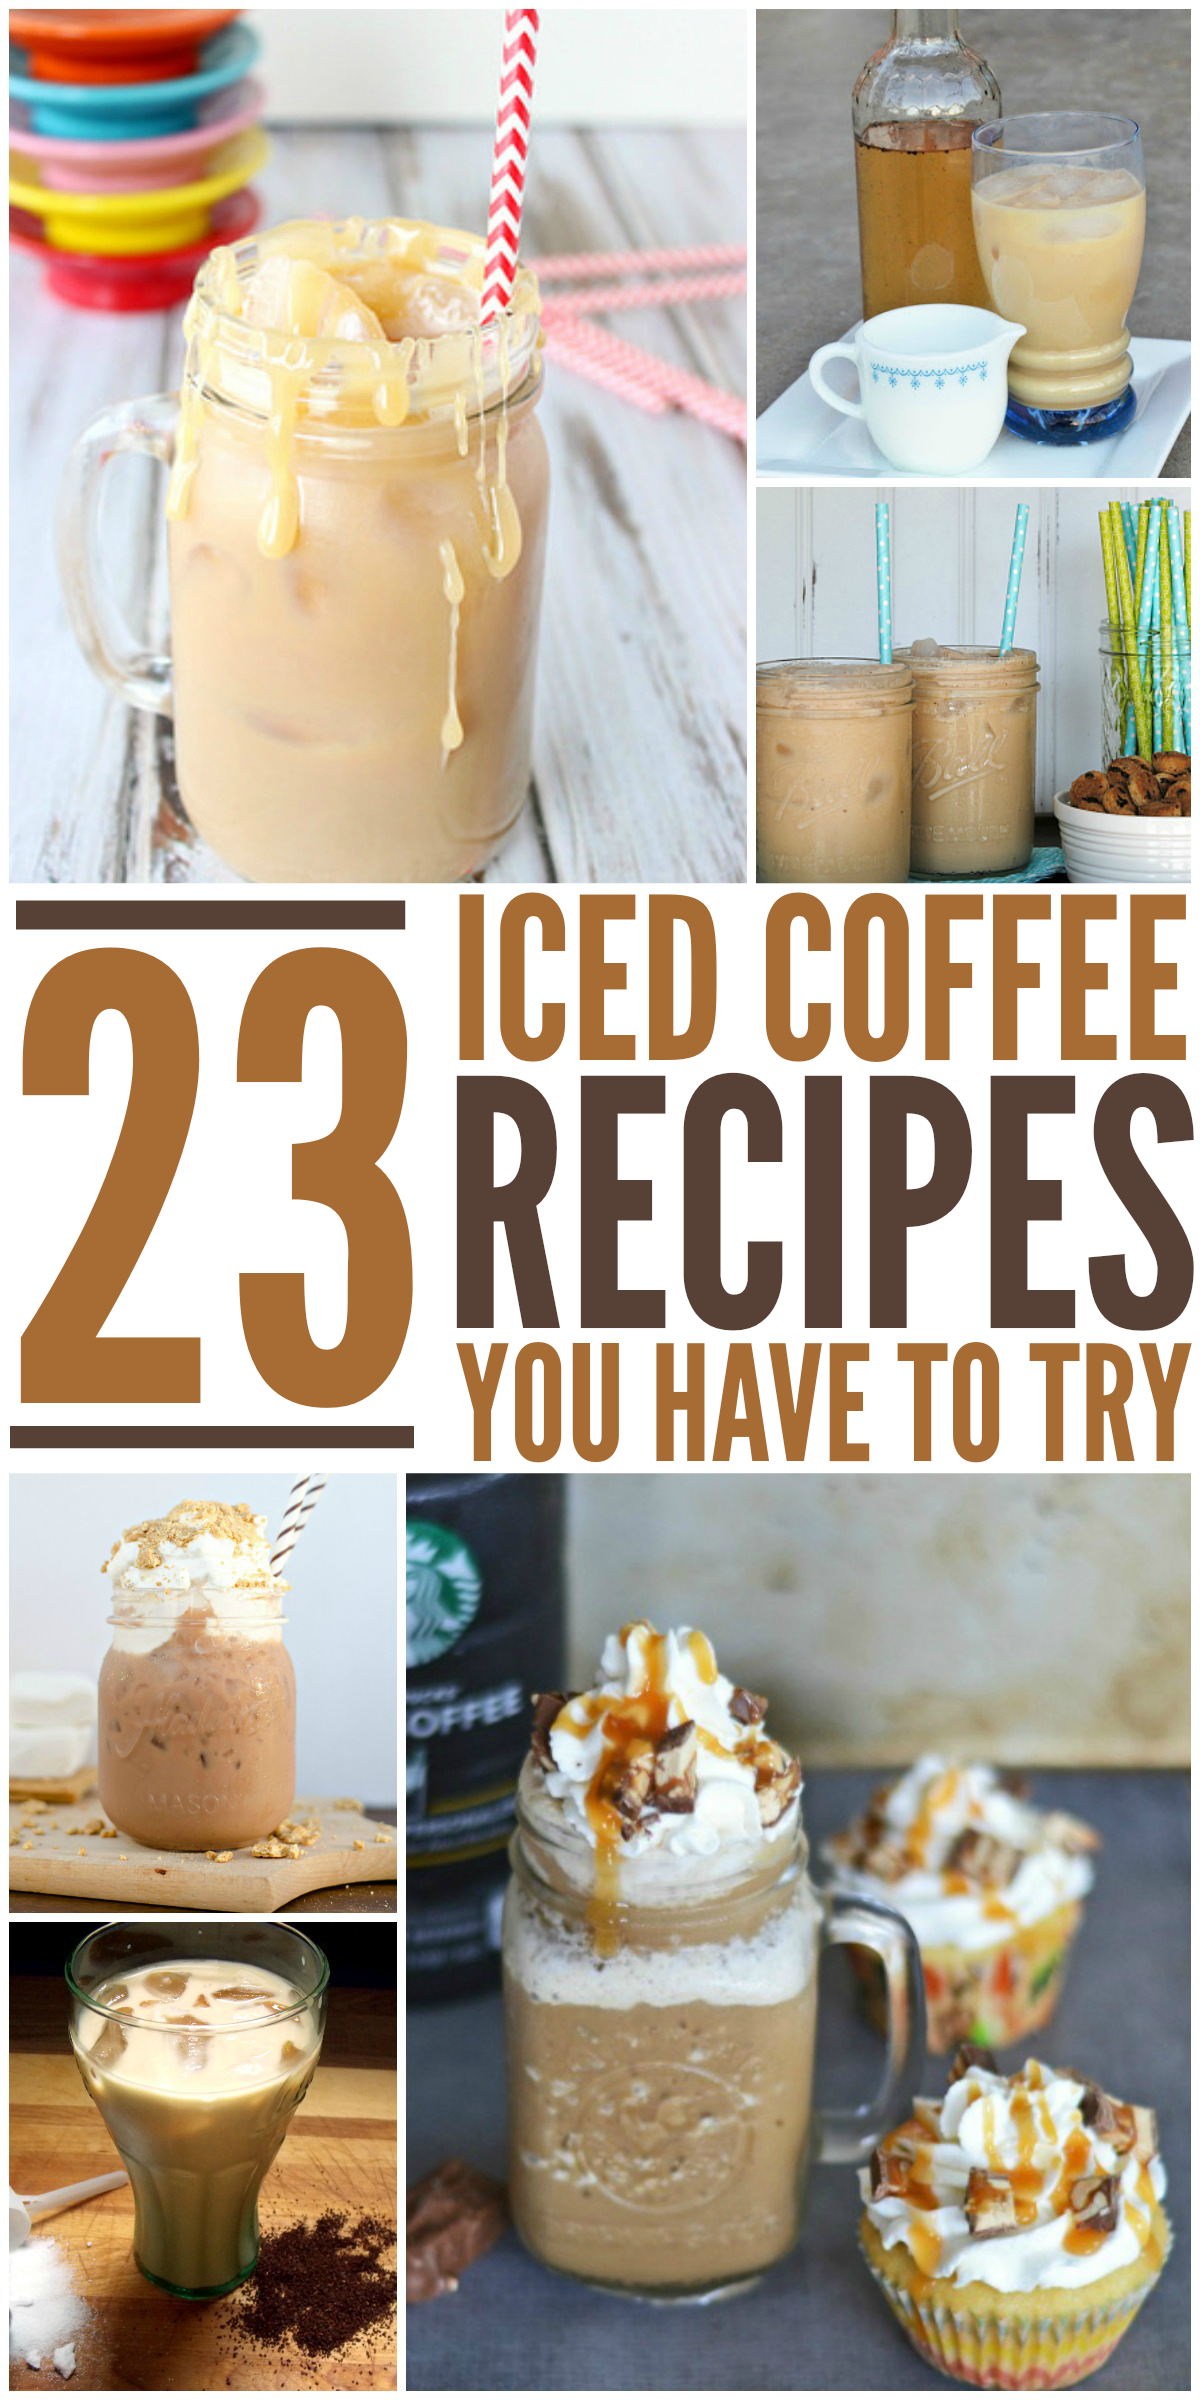 23 iced coffee recipes you have to try food drinks pinterest 23 iced coffee recipes you have to try forumfinder Gallery